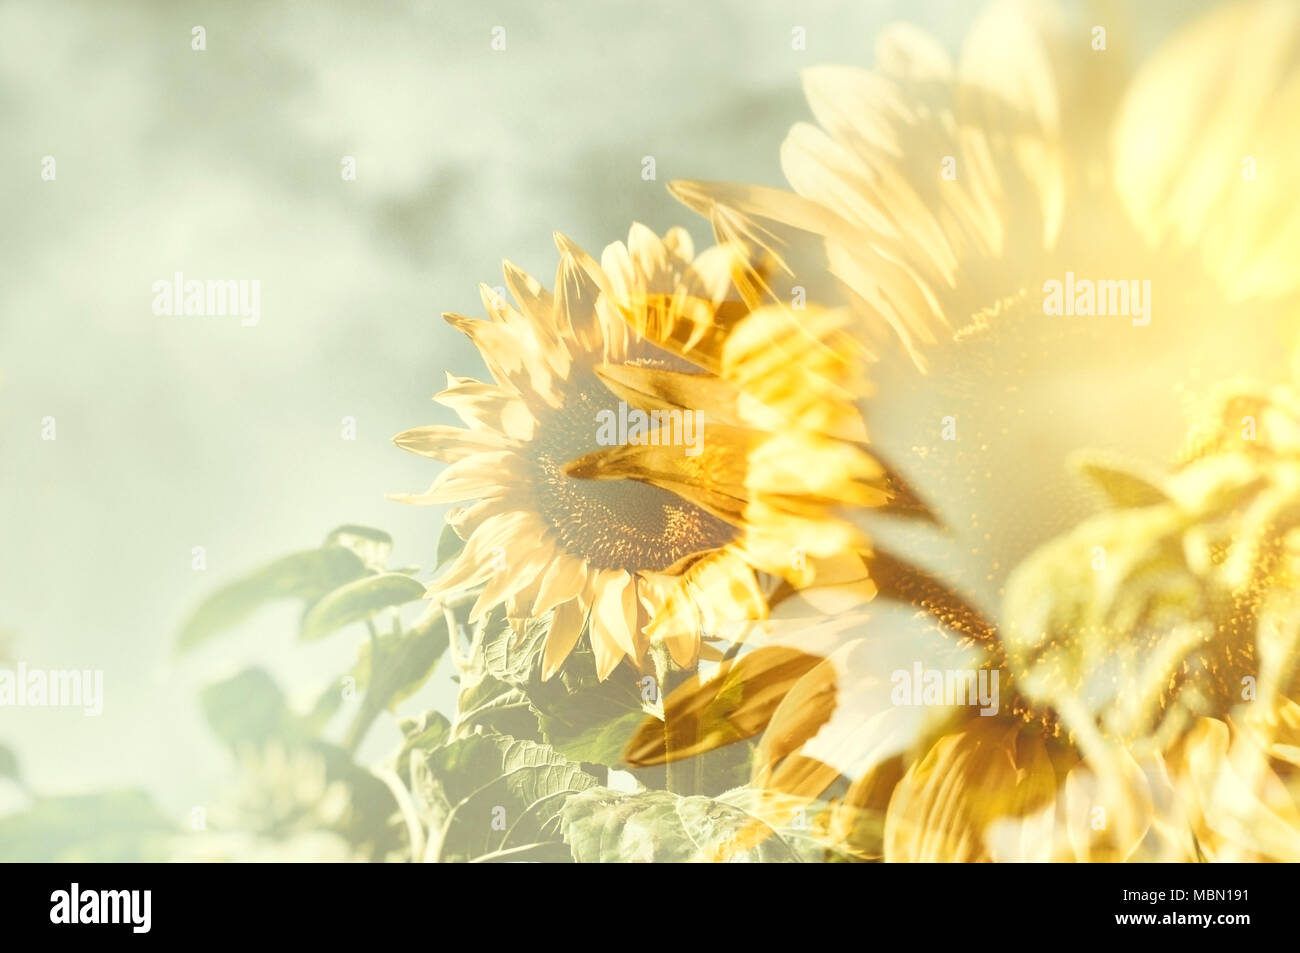 Abstract sunflower with blurred golden sunburst as background. Stock Photo